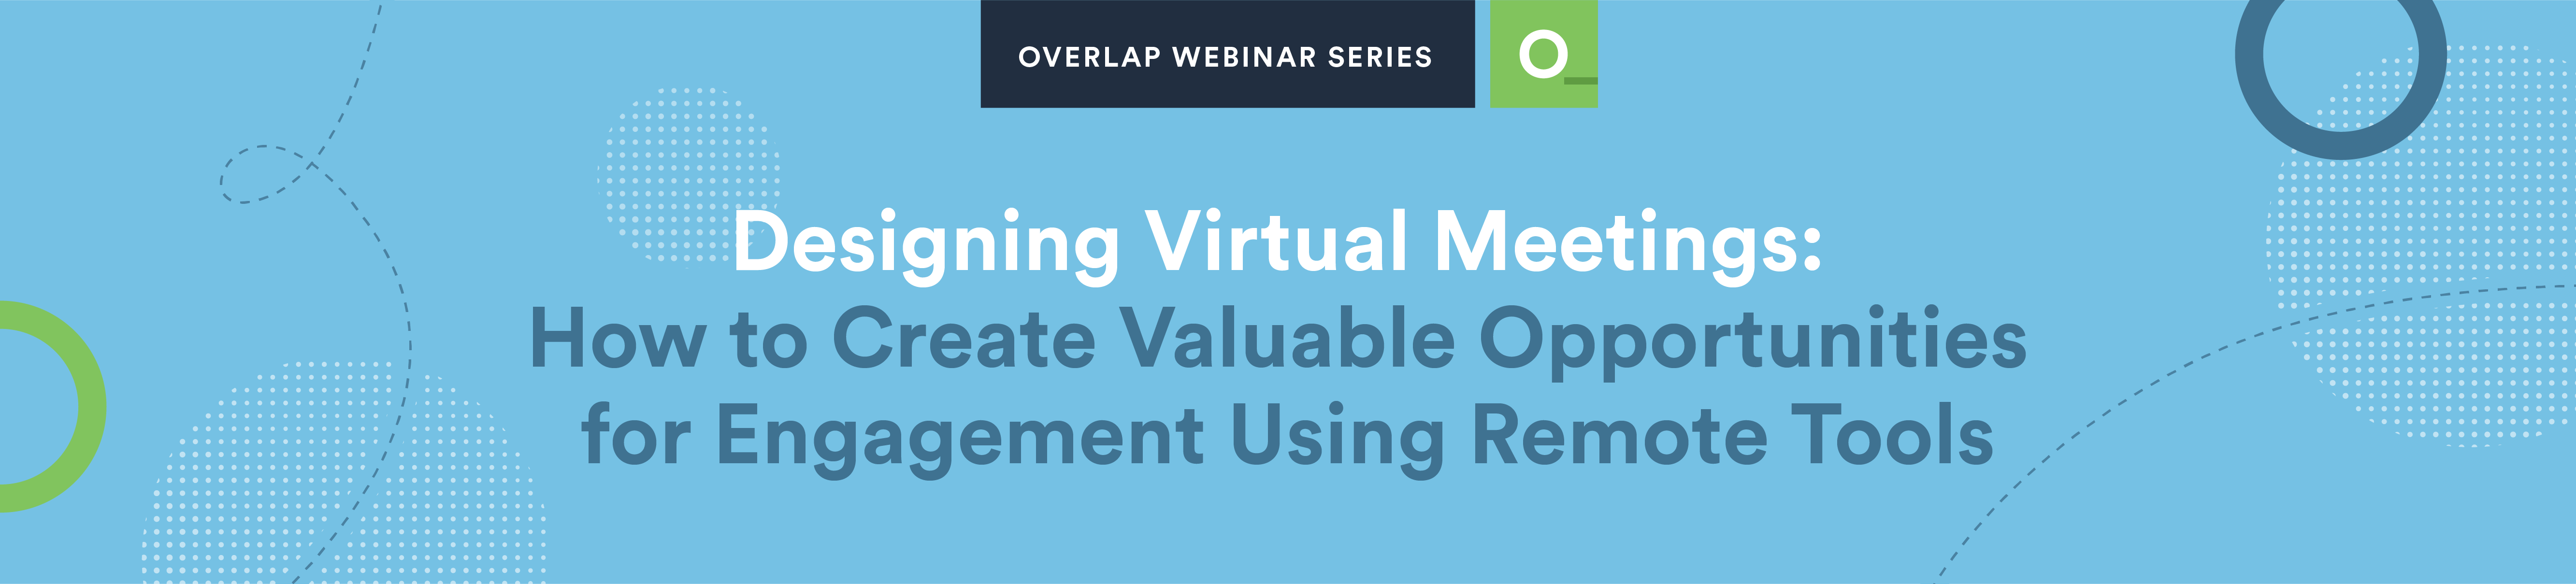 Designing Virtual Meetings: How to create valuable opportunities for engagement using remote tools